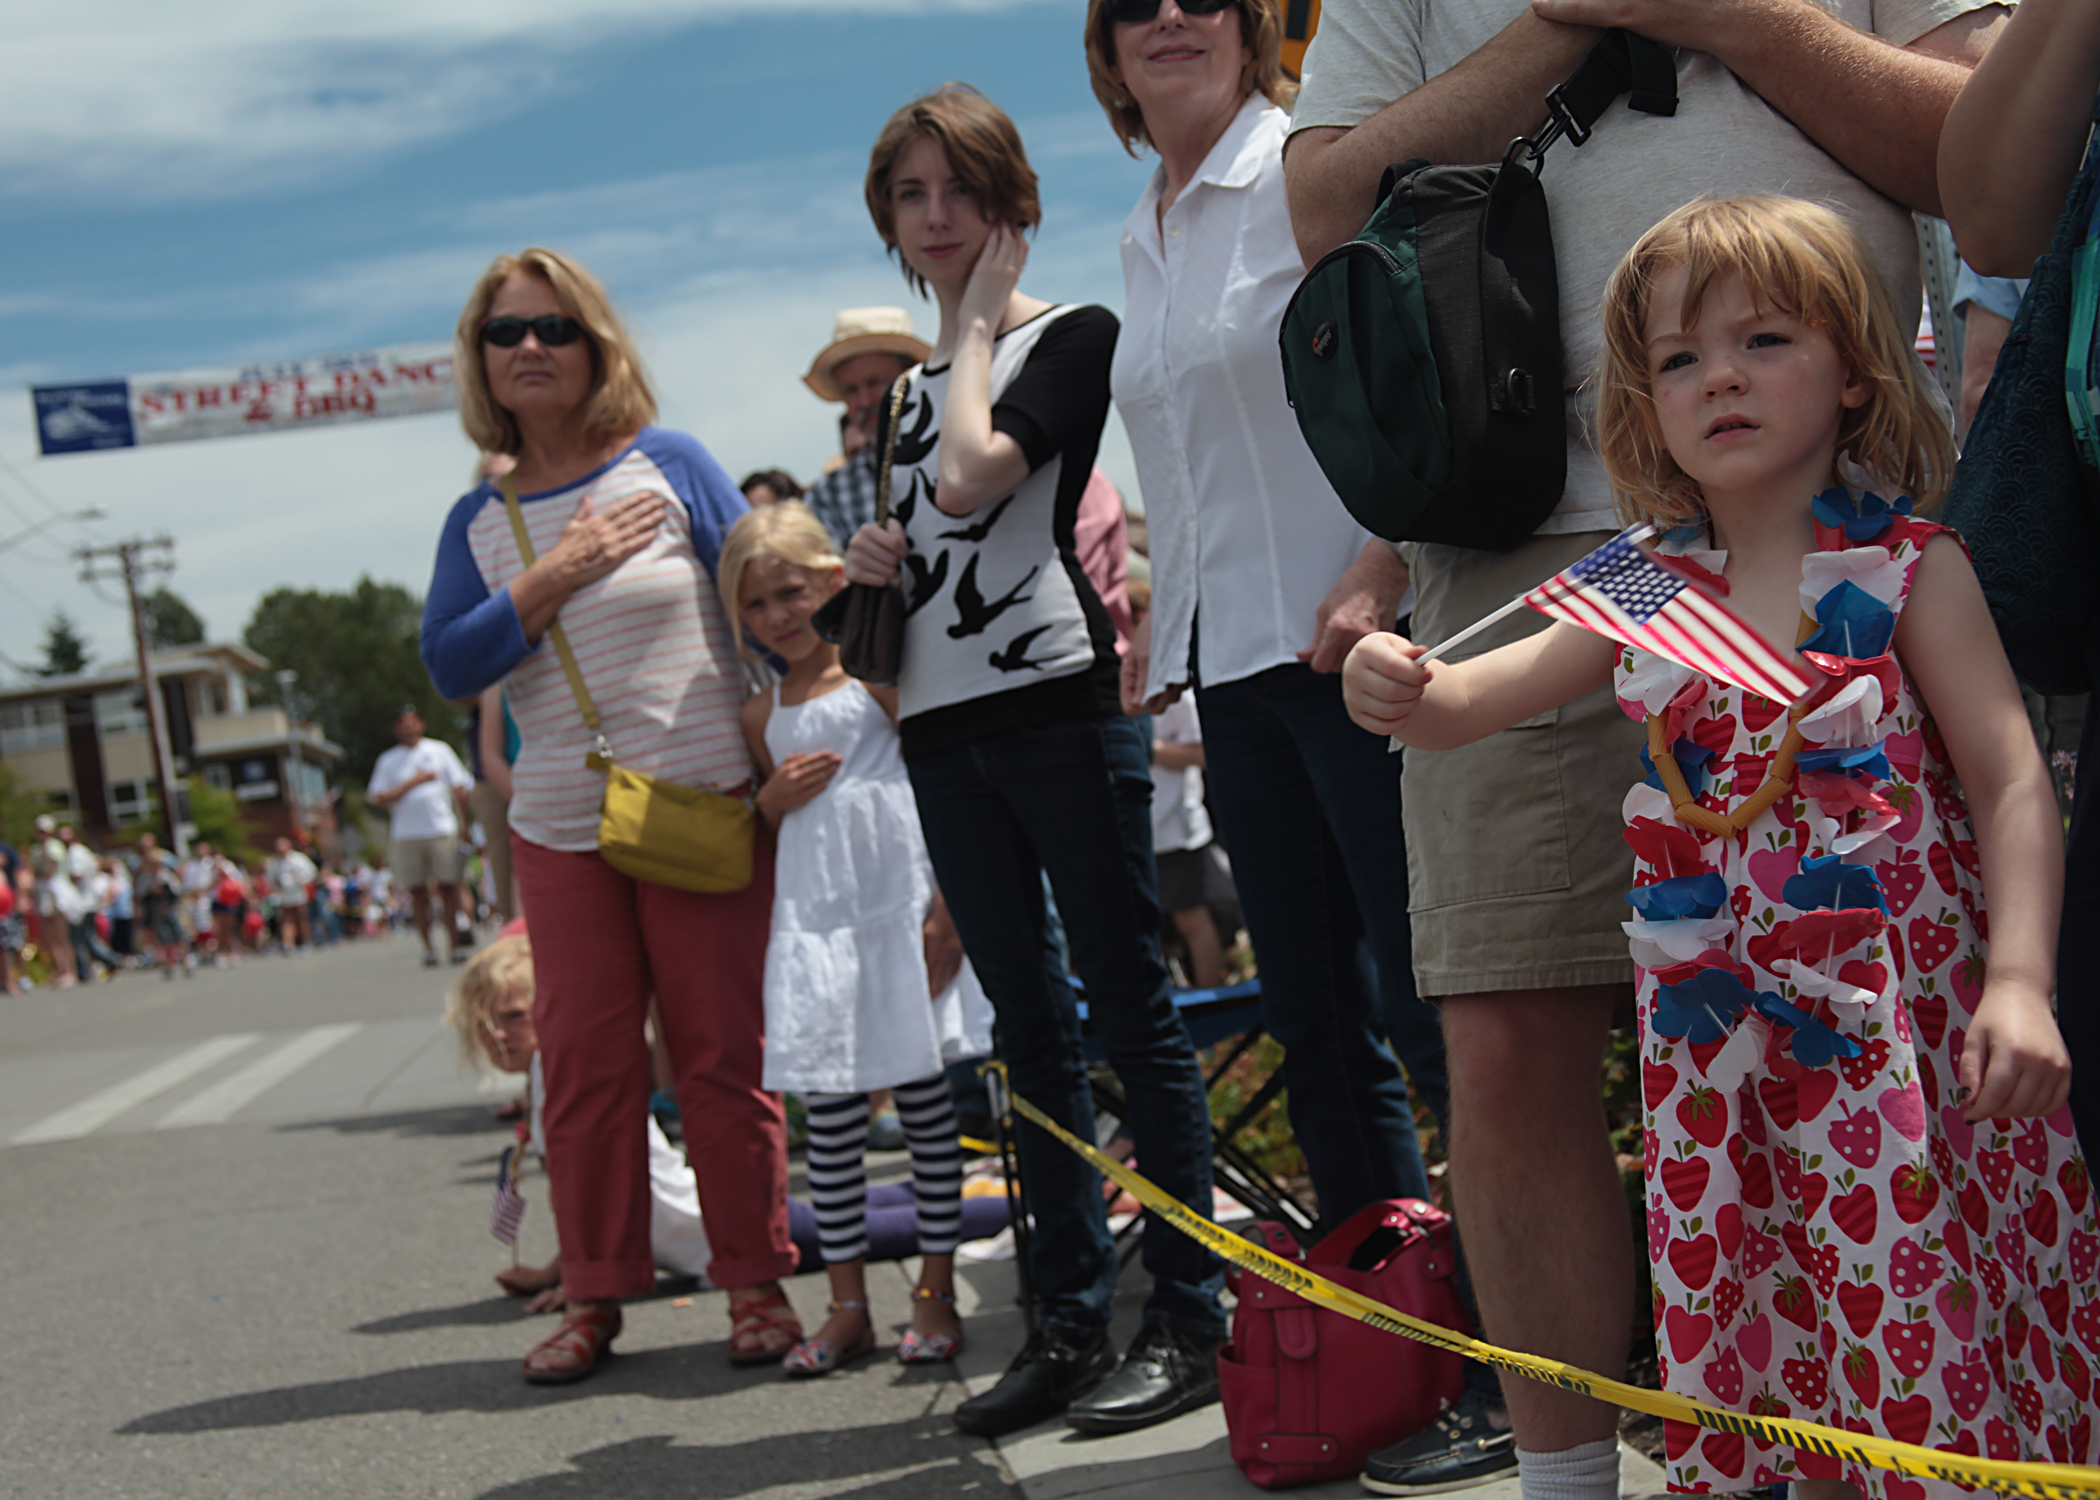 A crowd lines the streets of downtown Winslow just prior to the start of the 2014 Grand Old Fourth of July parade on Bainbridge Island.